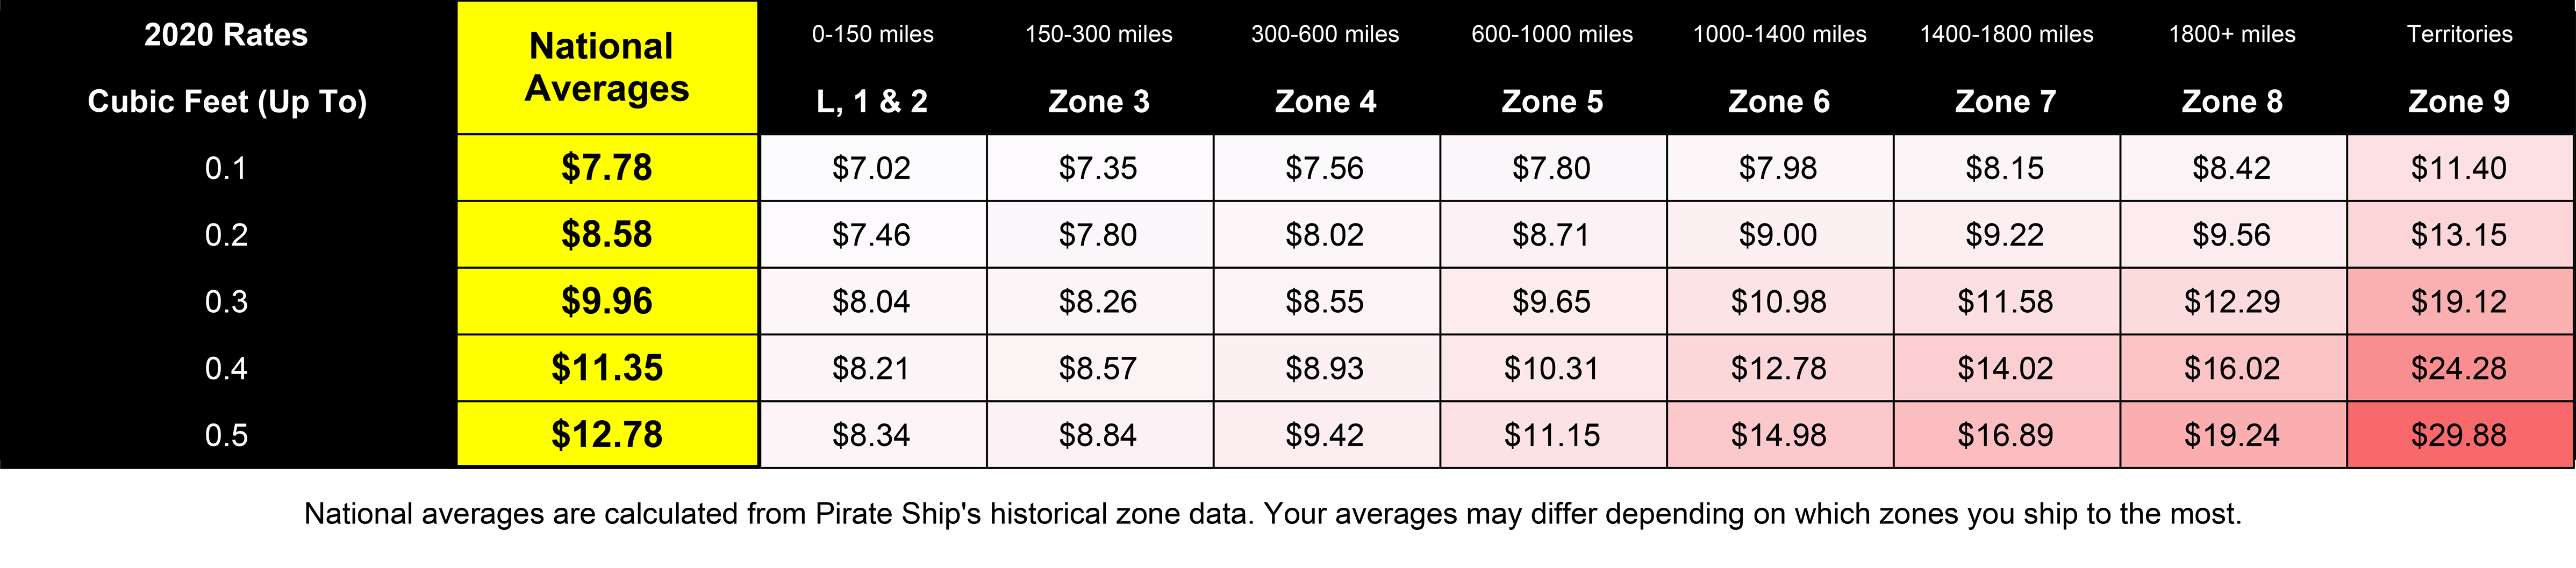 A chart showing the 2020 rates for Priority Mail Cubic. For Cubic Tier 0.1, the average national rate is $7.78. For local zones 1 and 2 the rate is $7.02, for zone 3 the rate is $7.35, for zone 4 the rate is $7.56, for zone 5 the rate is $7.80, for zone 6 the rate is $7.98, for zone 7 the rate is $8.15, for zone 8 the rate is $8.42, for zone 9 the rate is $11.40. For Cubic Tier 0.2, the average national rate is $8.58. For local zones 1 and 2 the rate is $7.46, for zone 3 the rate is $7.80, for zone 4 the rate is $8.02, for zone 5 the rate is $8.71, for zone 6 the rate is $9.00, for zone 7 the rate is $9.22, for zone 8 the rate is $9.56, for zone 9 the rate is $13.15. For Cubic Tier 0.3, the average national rate is $9.96. For local zones 1 and 2 the rate is $8.04, for zone 3 the rate is $8.26, for zone 4 the rate is $8.55, for zone 5 the rate is $9.65, for zone 6 the rate is $10.98, for zone 7 the rate is $11.58, for zone 8 the rate is $12.29, for zone 9 the rate is $19.12. For Cubic Tier 0.4, the average national rate is $11.35. For local zones 1 and 2 the rate is $8.21, for zone 3 the rate is $8.57, for zone 4 the rate is $8.93, for zone 5 the rate is $10.31, for zone 6 the rate is $12.78, for zone 7 the rate is $14.02, for zone 8 the rate is $16.02, for zone 9 the rate is $24.28. For Cubic Tier 0.5, the average national rate is $12.78. For local zones 1 and 2 the rate is $8.34, for zone 3 the rate is $8.84, for zone 4 the rate is $9.42, for zone 5 the rate is $11.15, for zone 6 the rate is $14.98, for zone 7 the rate is $16.89, for zone 8 the rate is $19.24, for zone 9 the rate is $29.88.